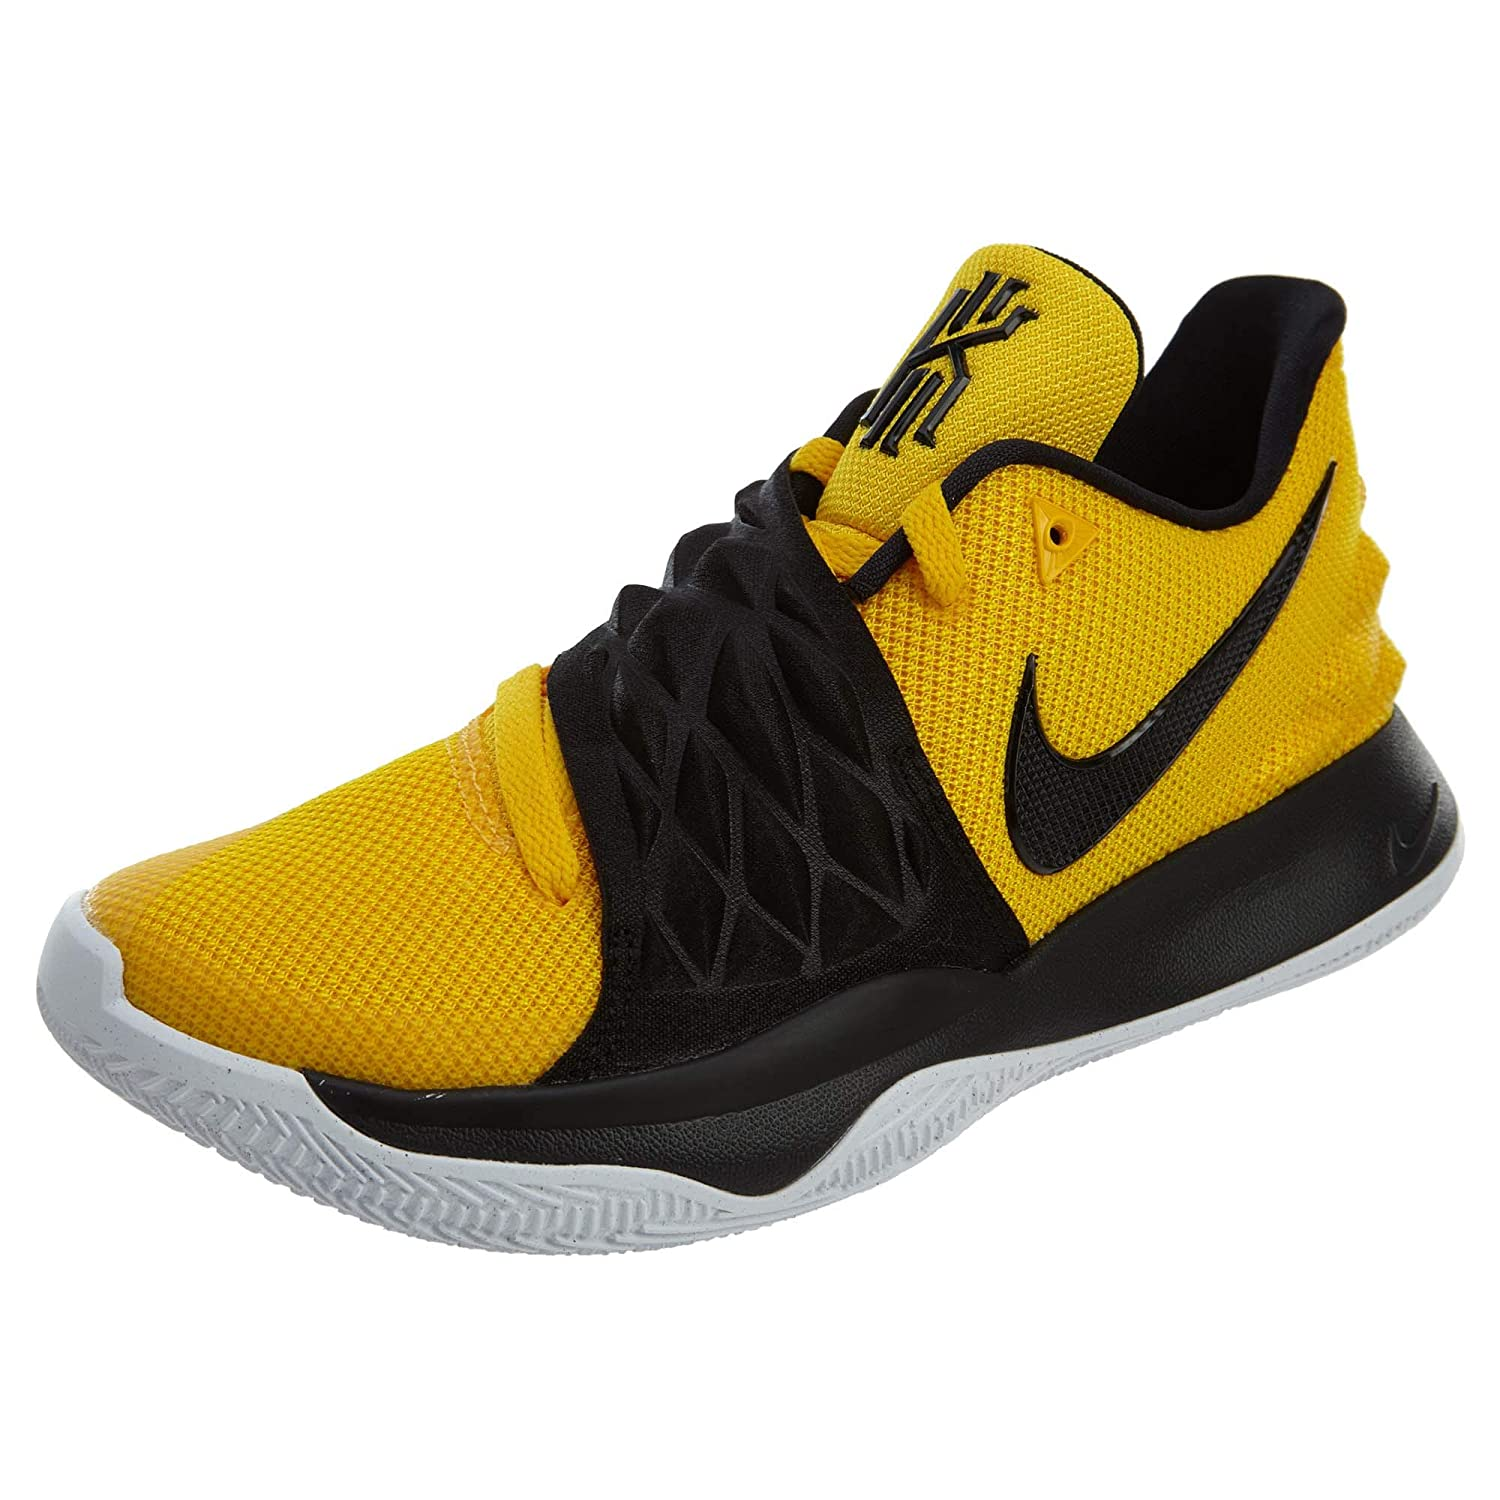 the best attitude 09b06 c9a55 Nike Kyrie Low Mens Fashion-Sneakers AO8979-700_12 - Amarillo/Black